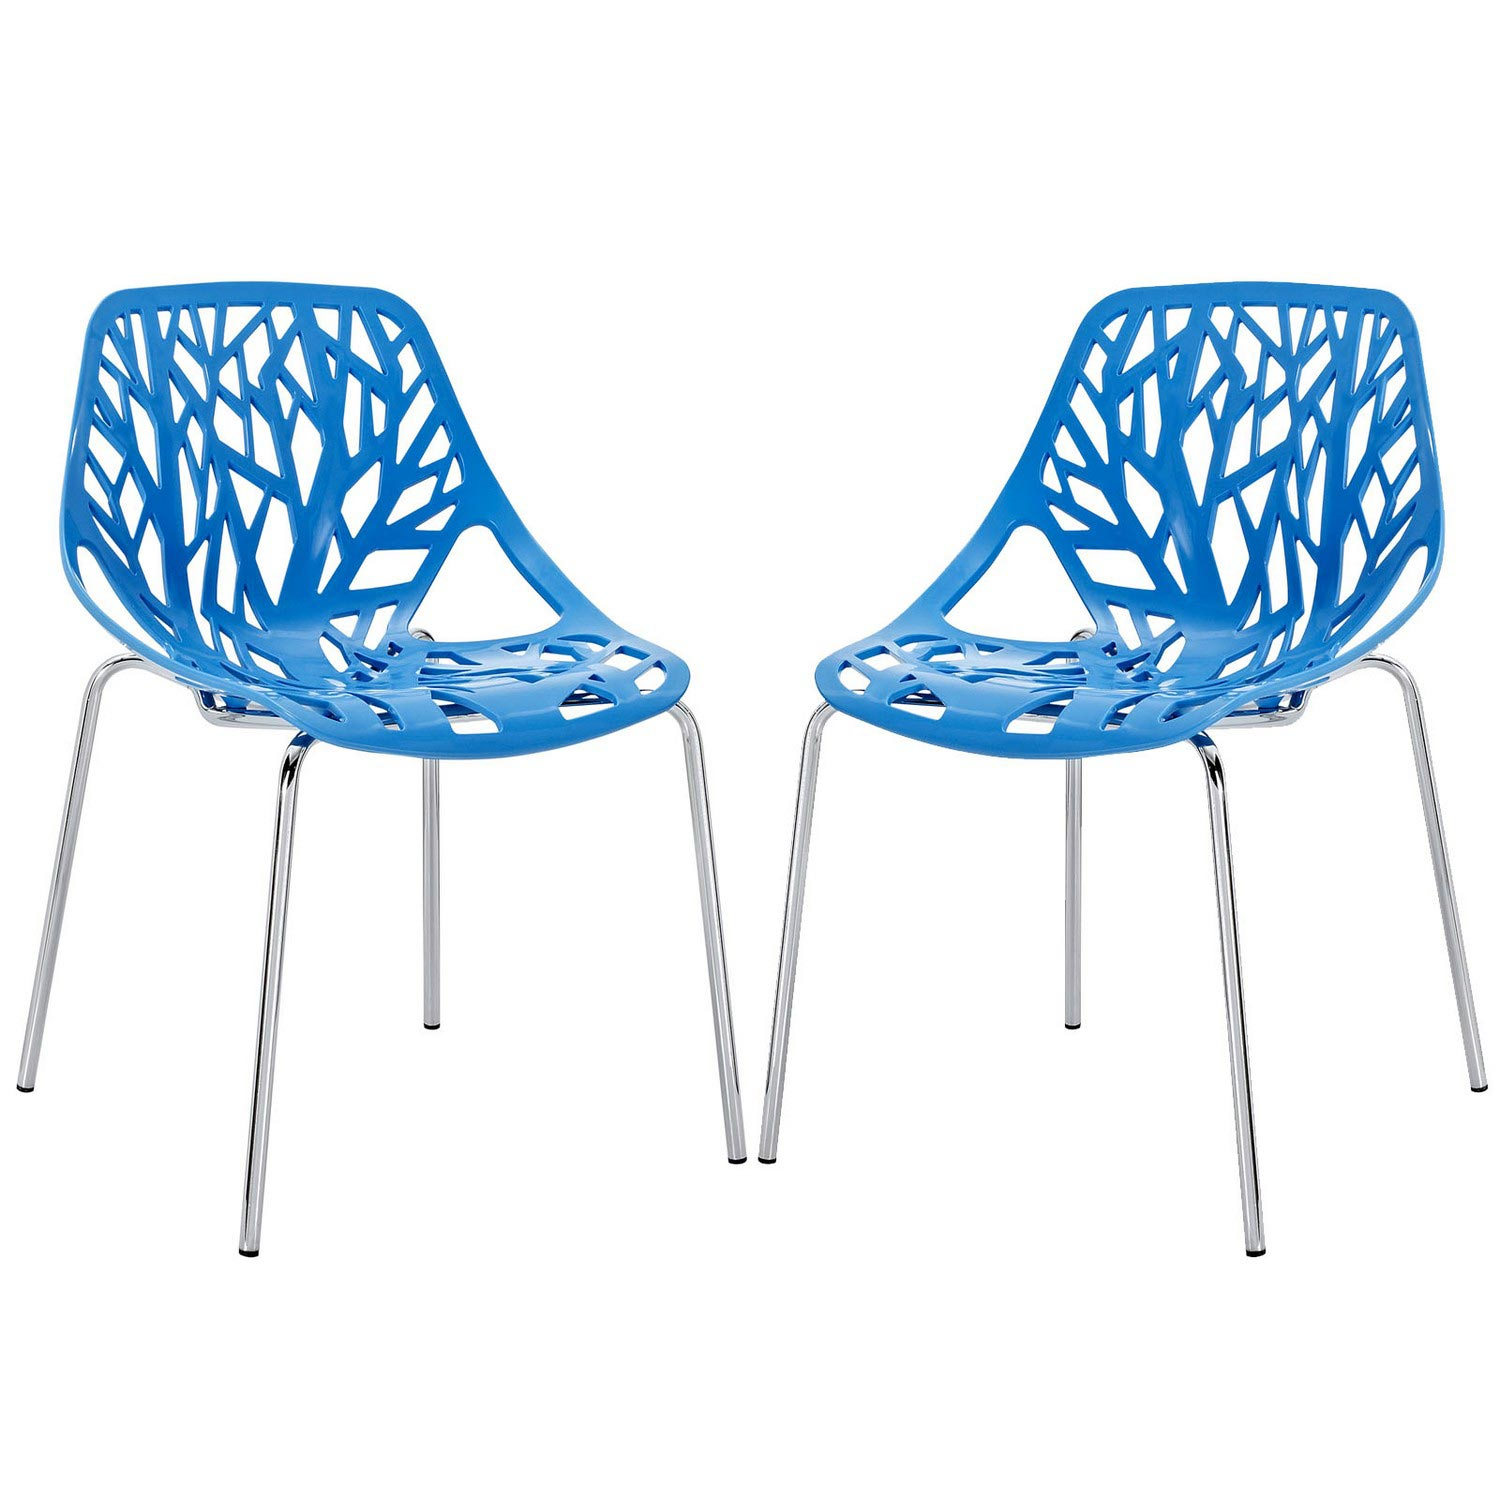 Modway Stencil Dining Side Chair Set of 2 - Blue